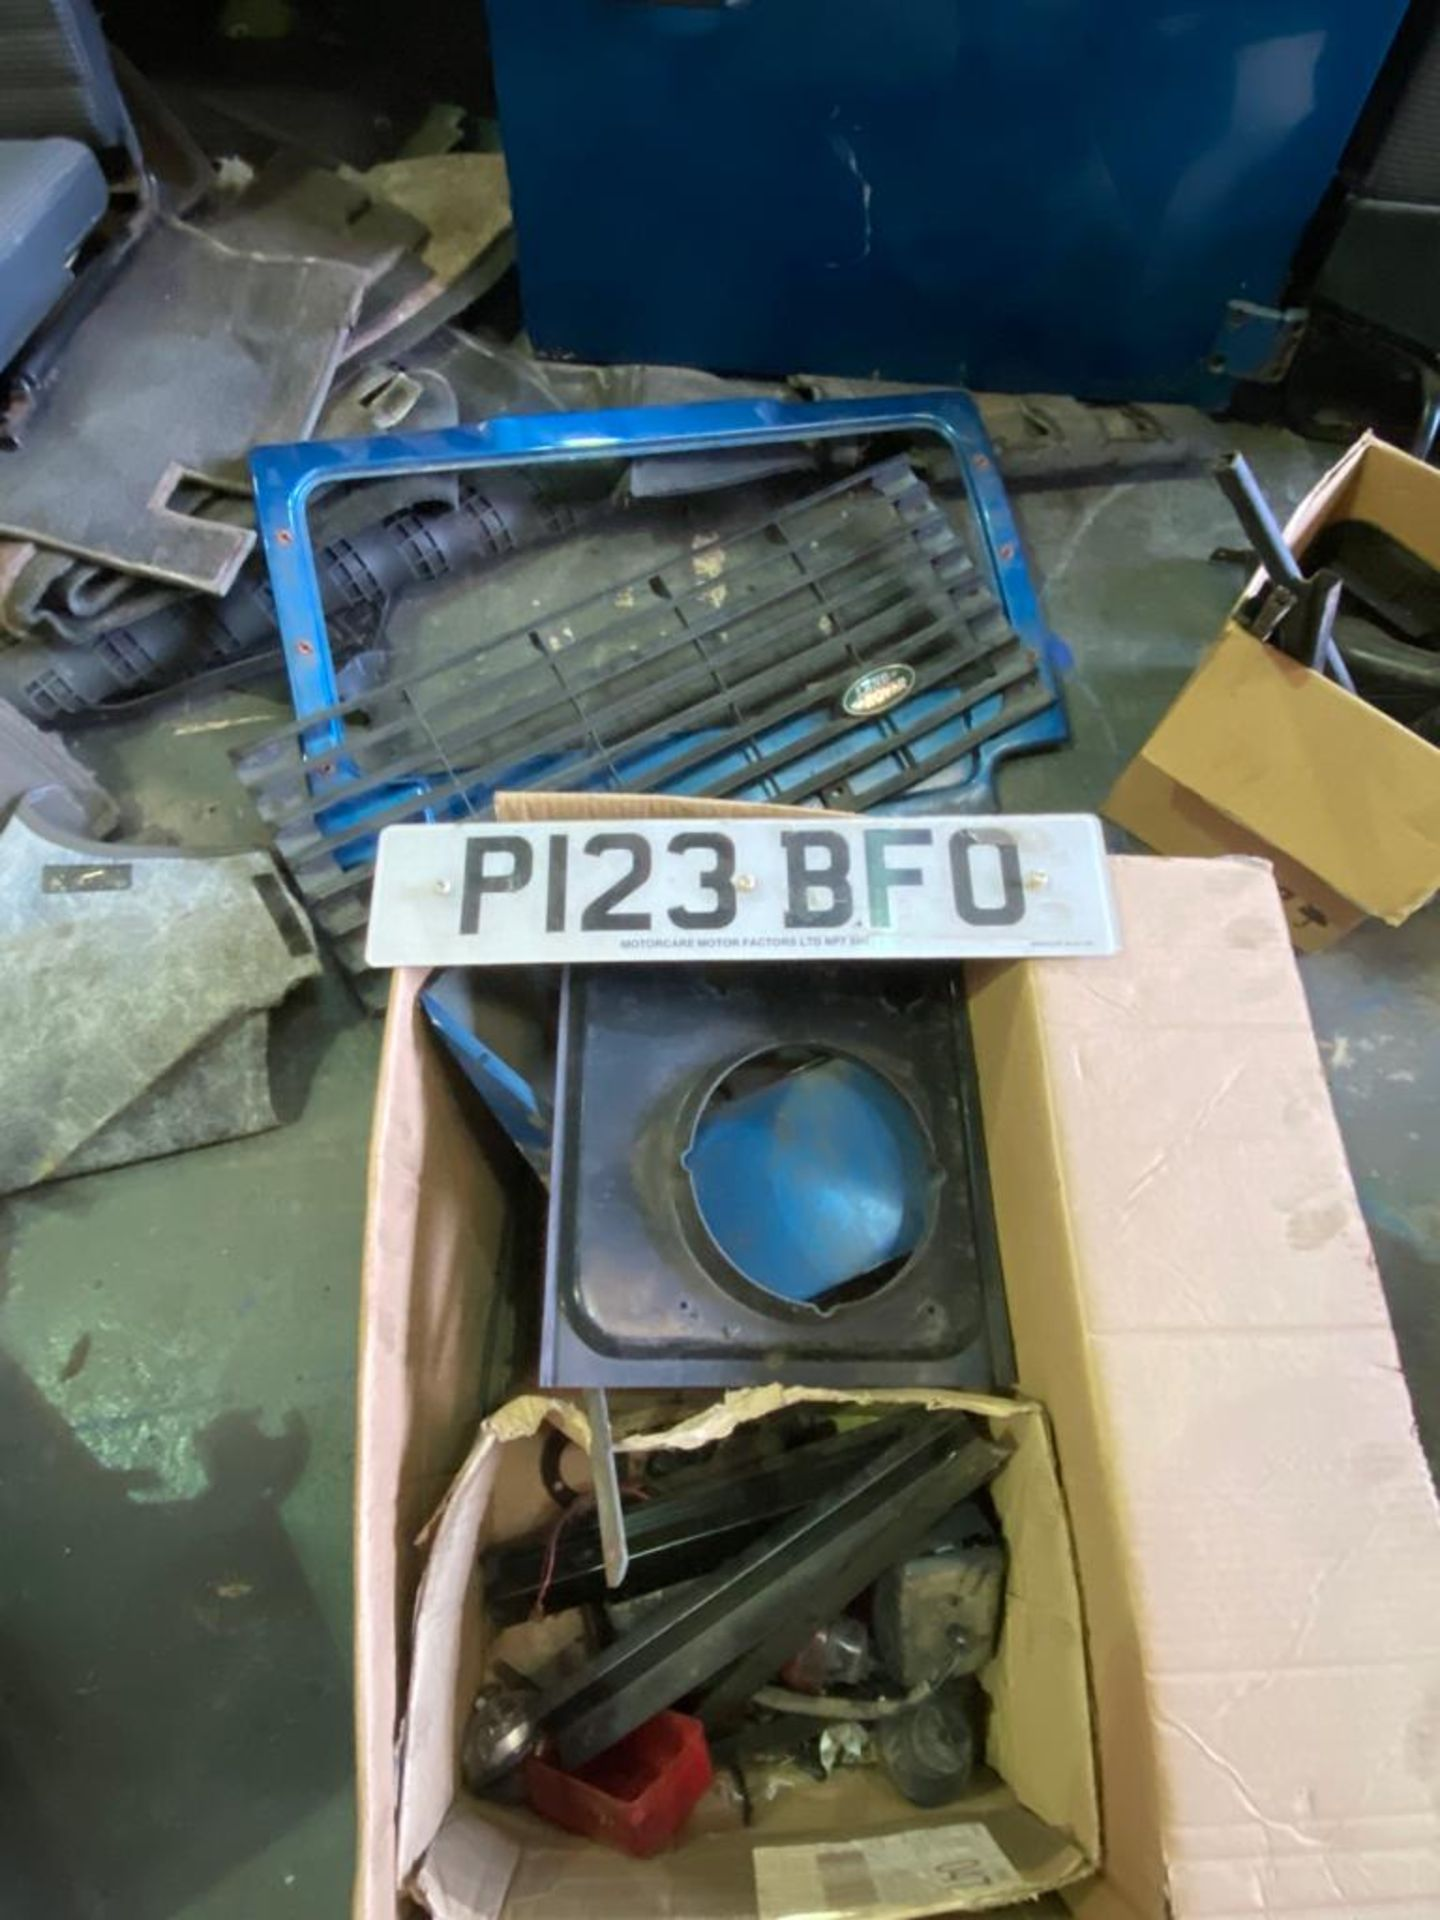 Land Rover 110 County, 300 TDI Engine Appears Mostly Complete - No Bumper, Bonnet, Glass etc As - Image 19 of 26